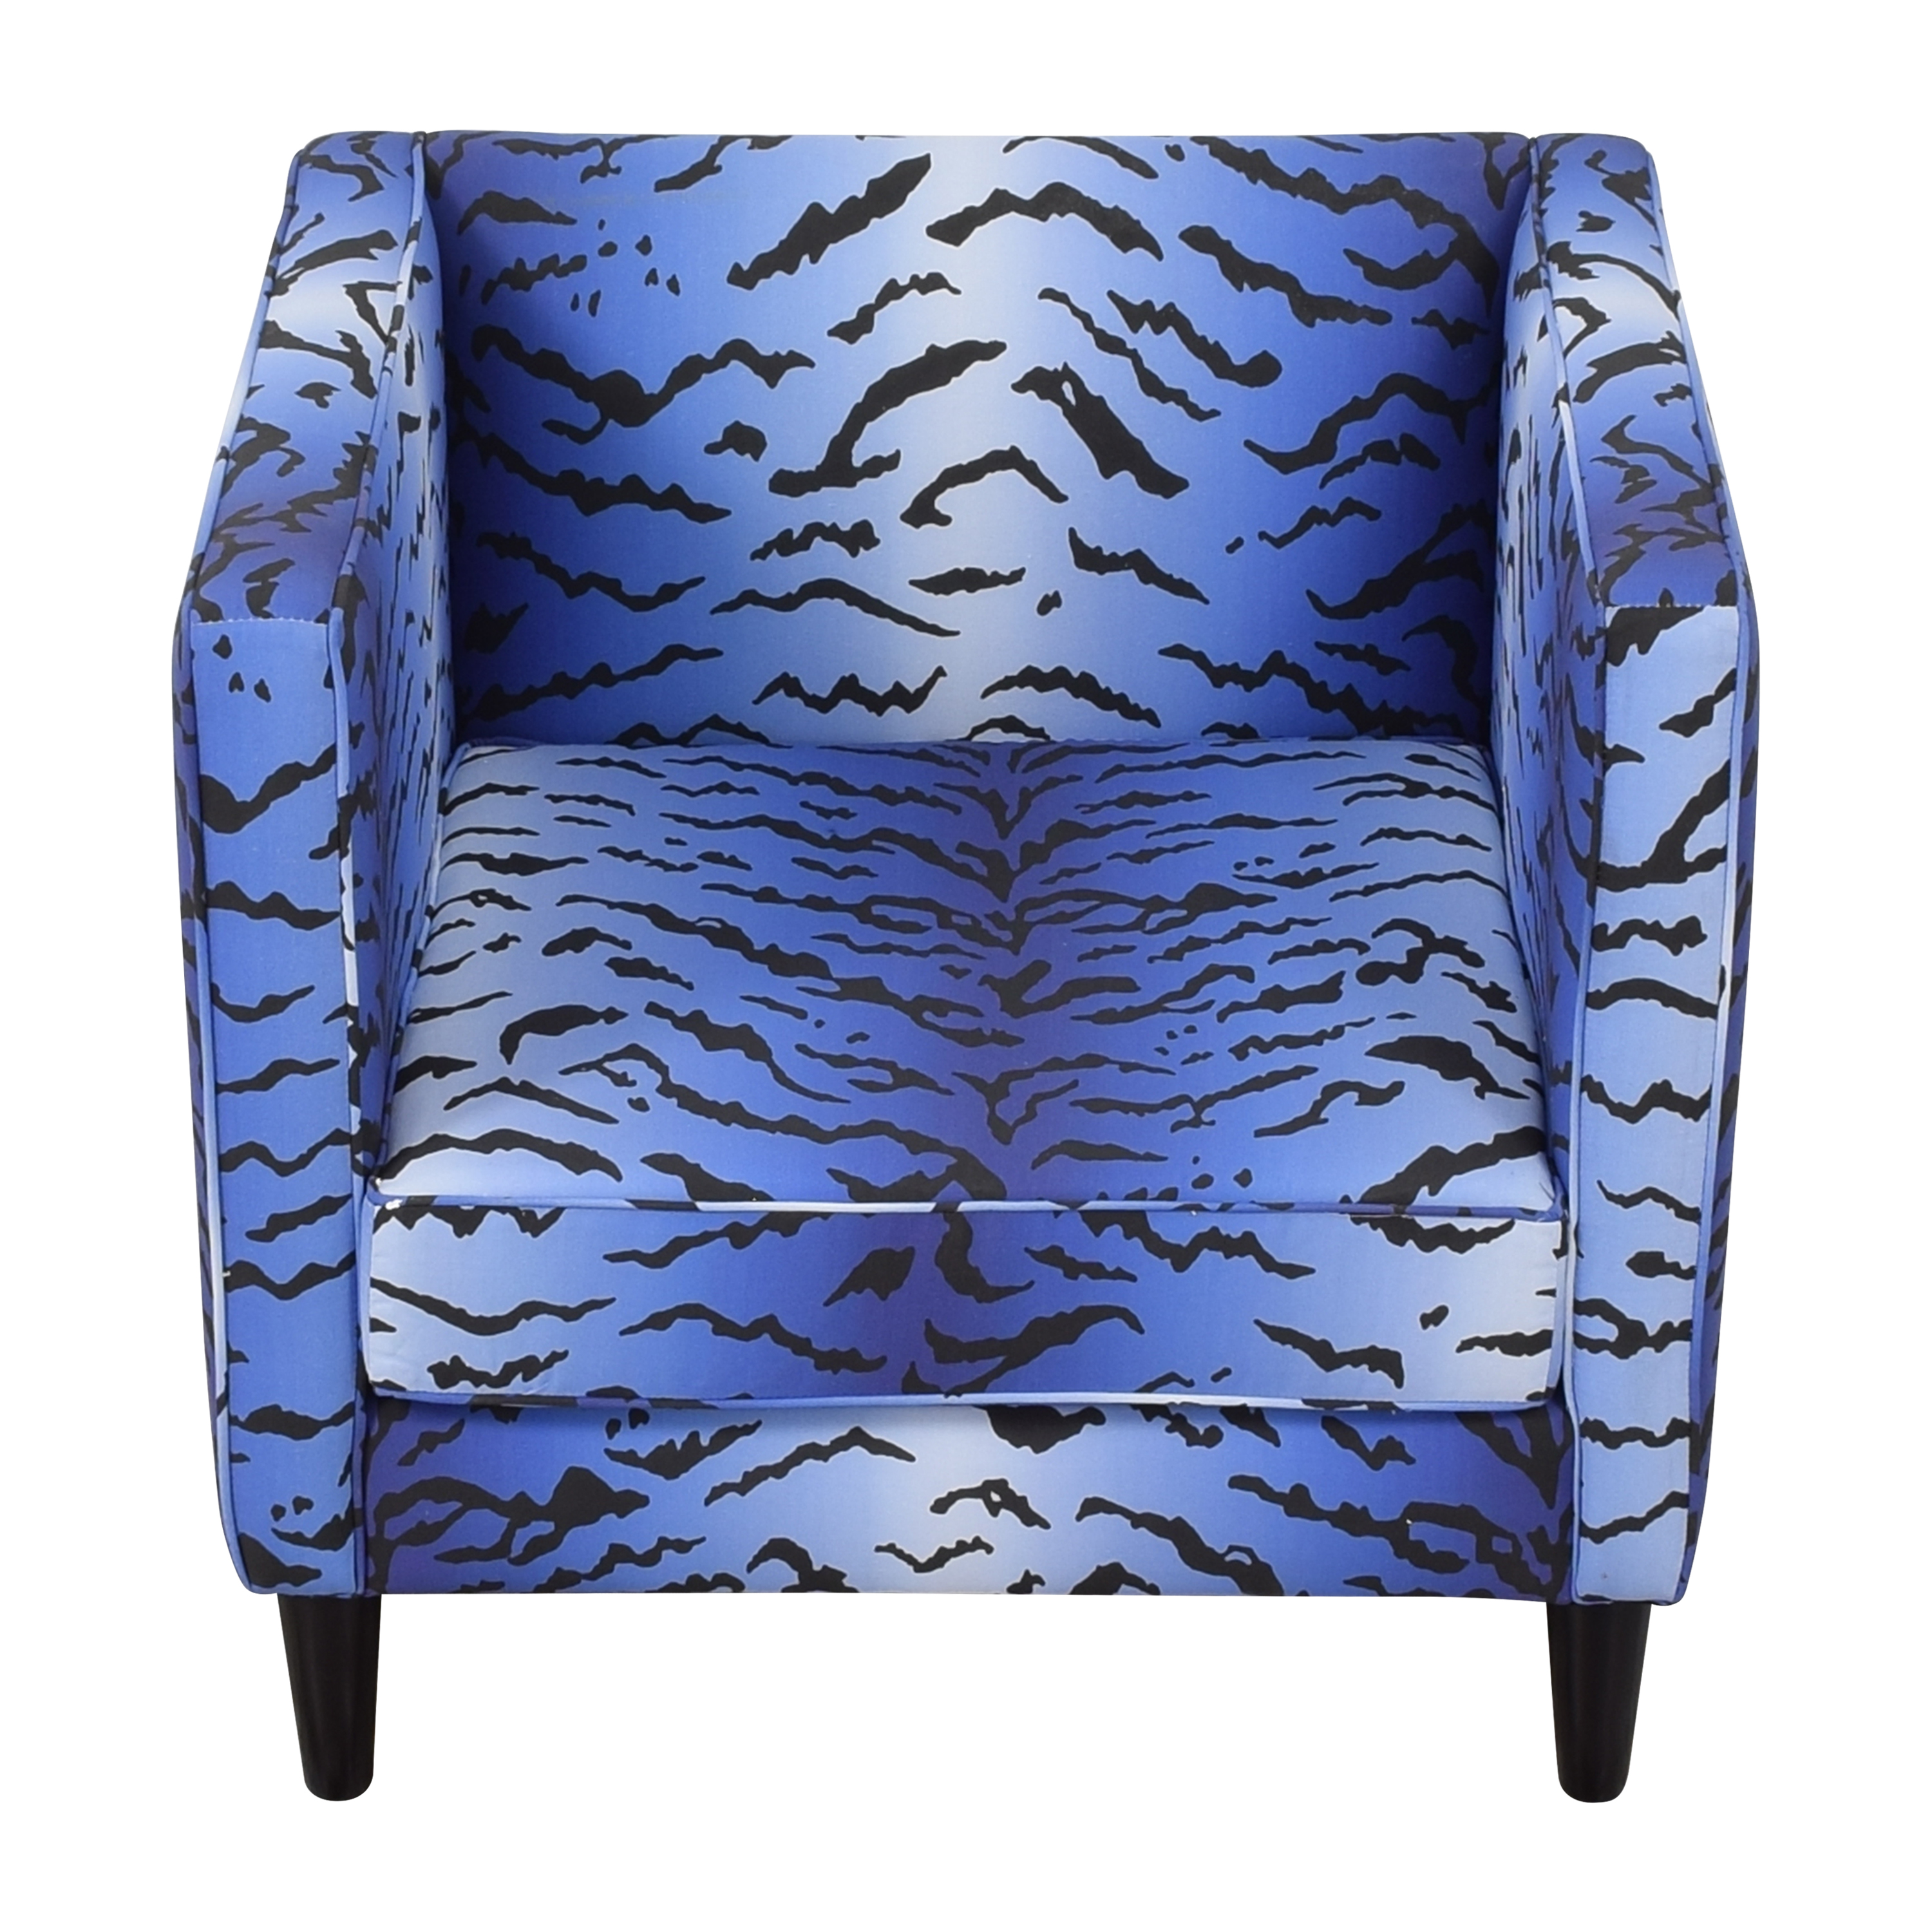 shop The Inside Royal Tiger Tuxedo Chair The Inside Chairs